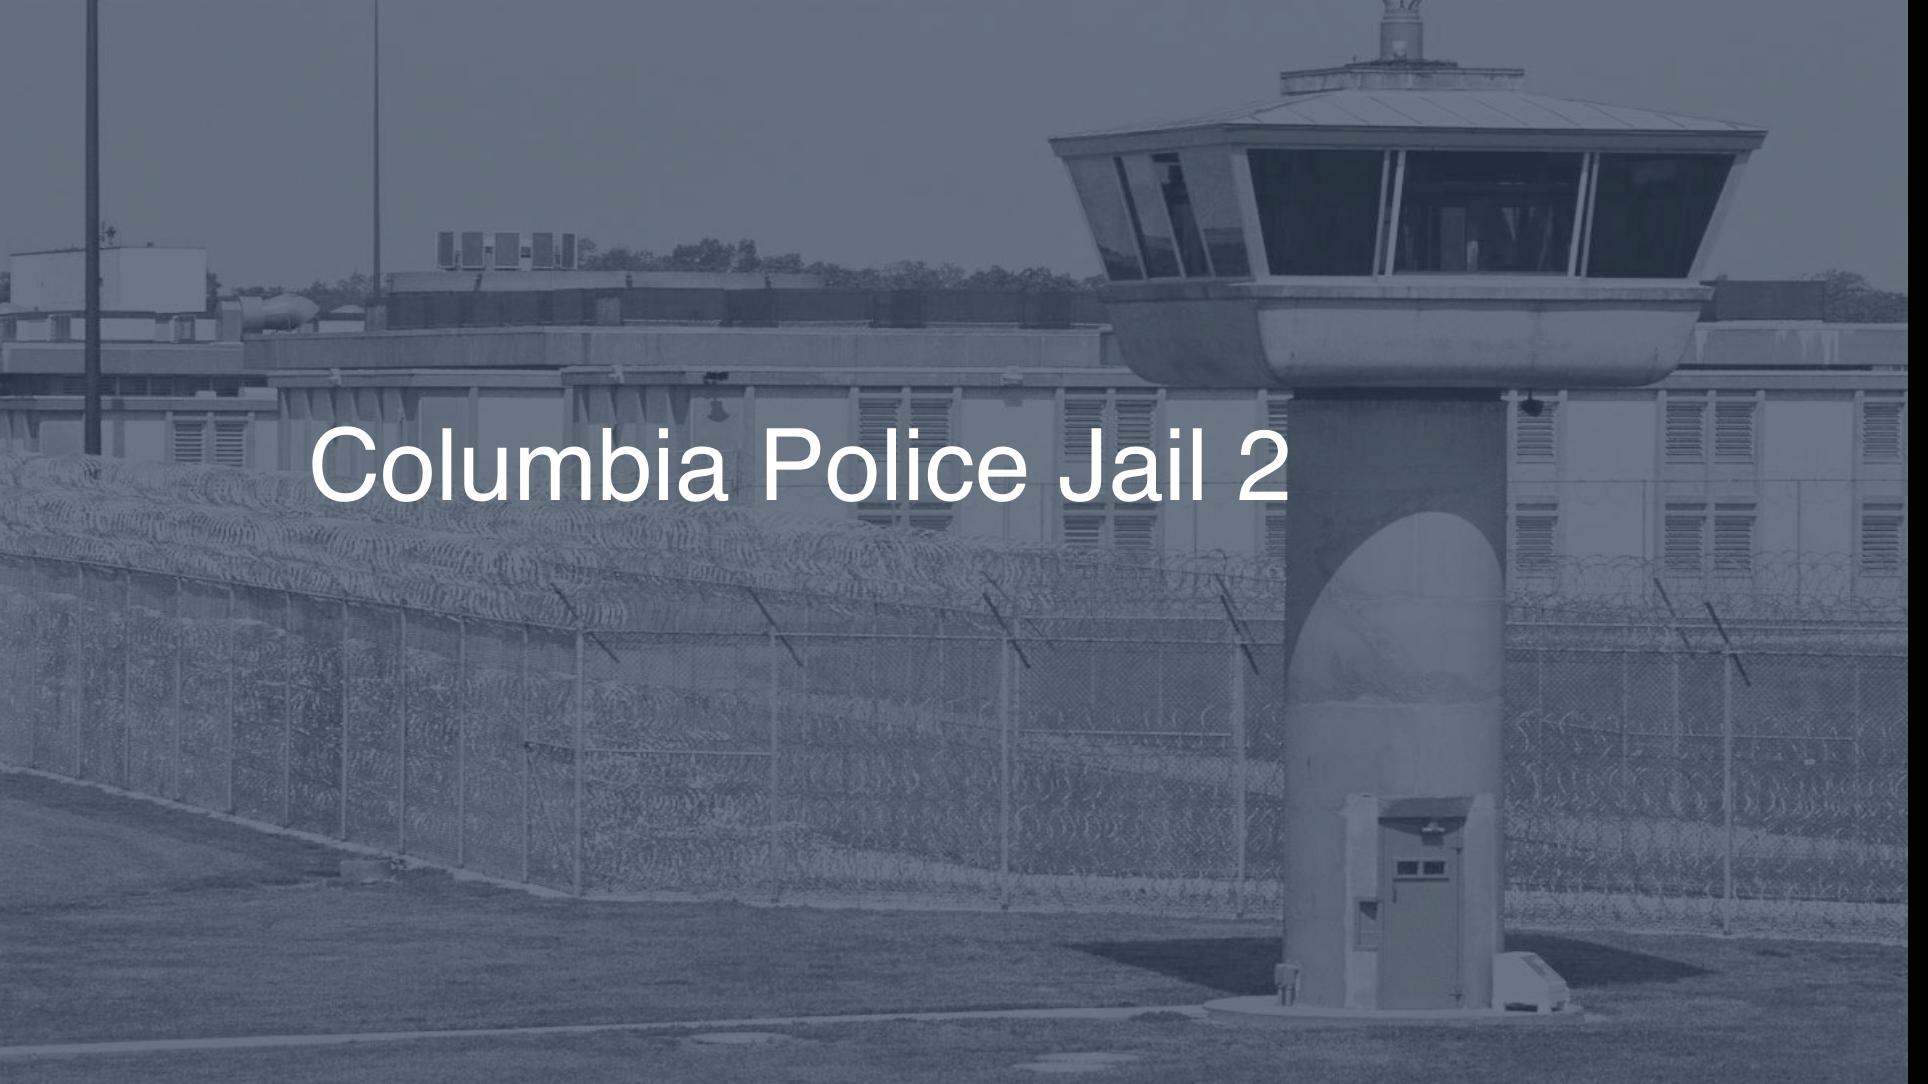 Columbia Police Jail correctional facility picture